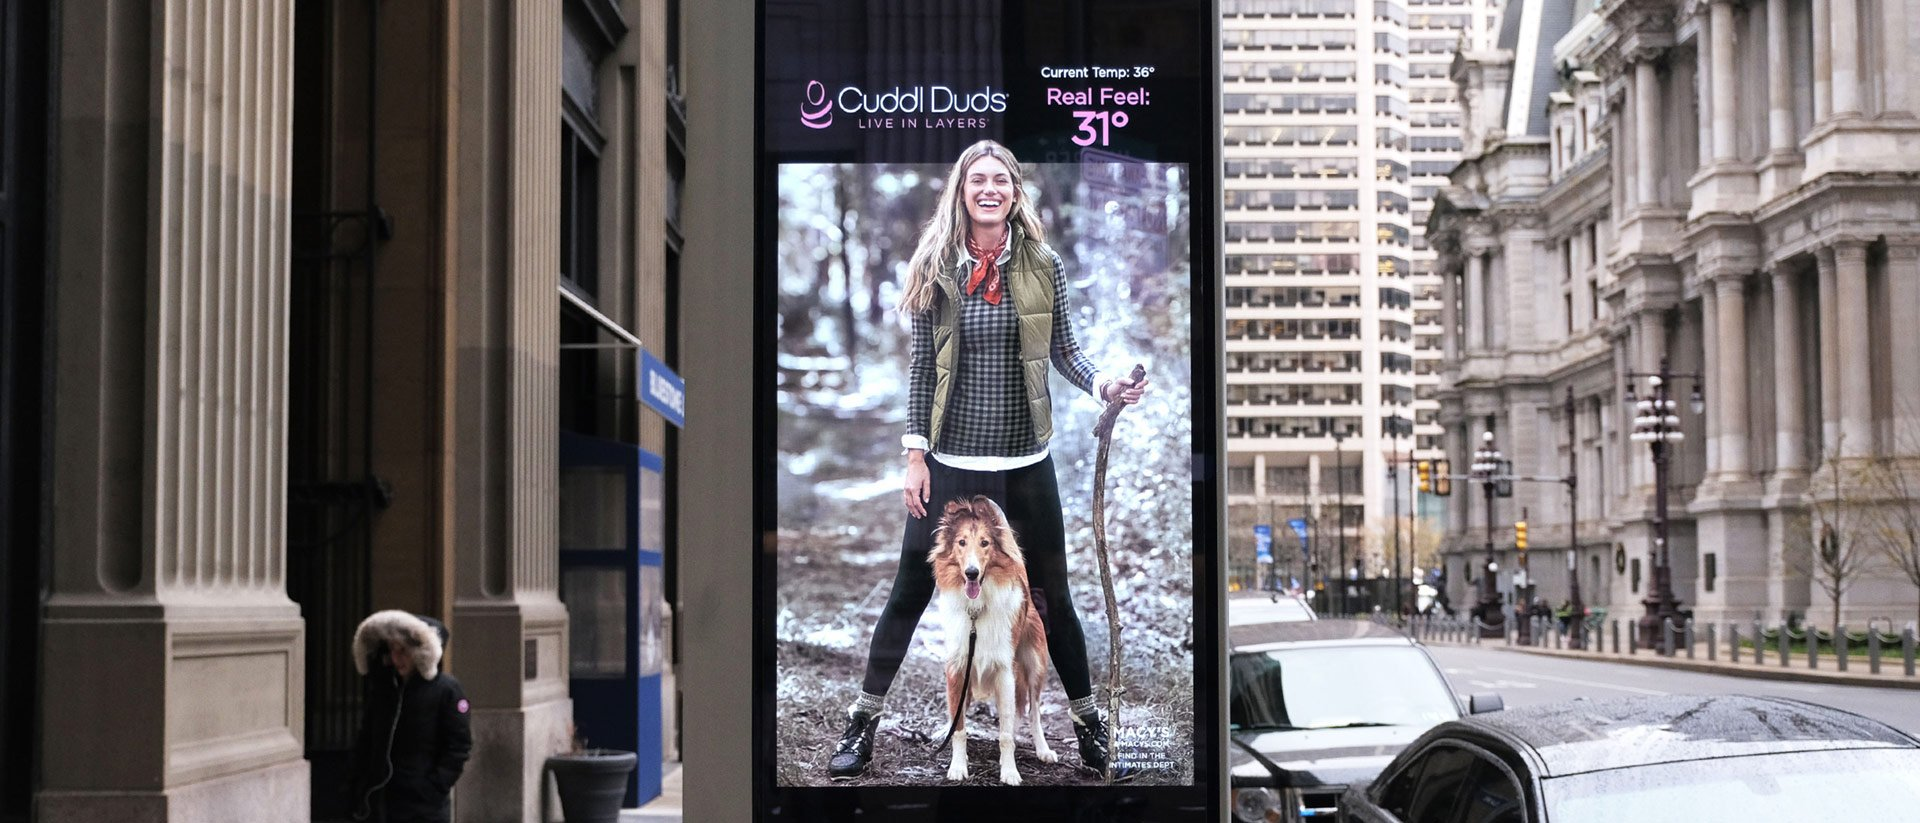 Digital Advertising for CuddlDuds